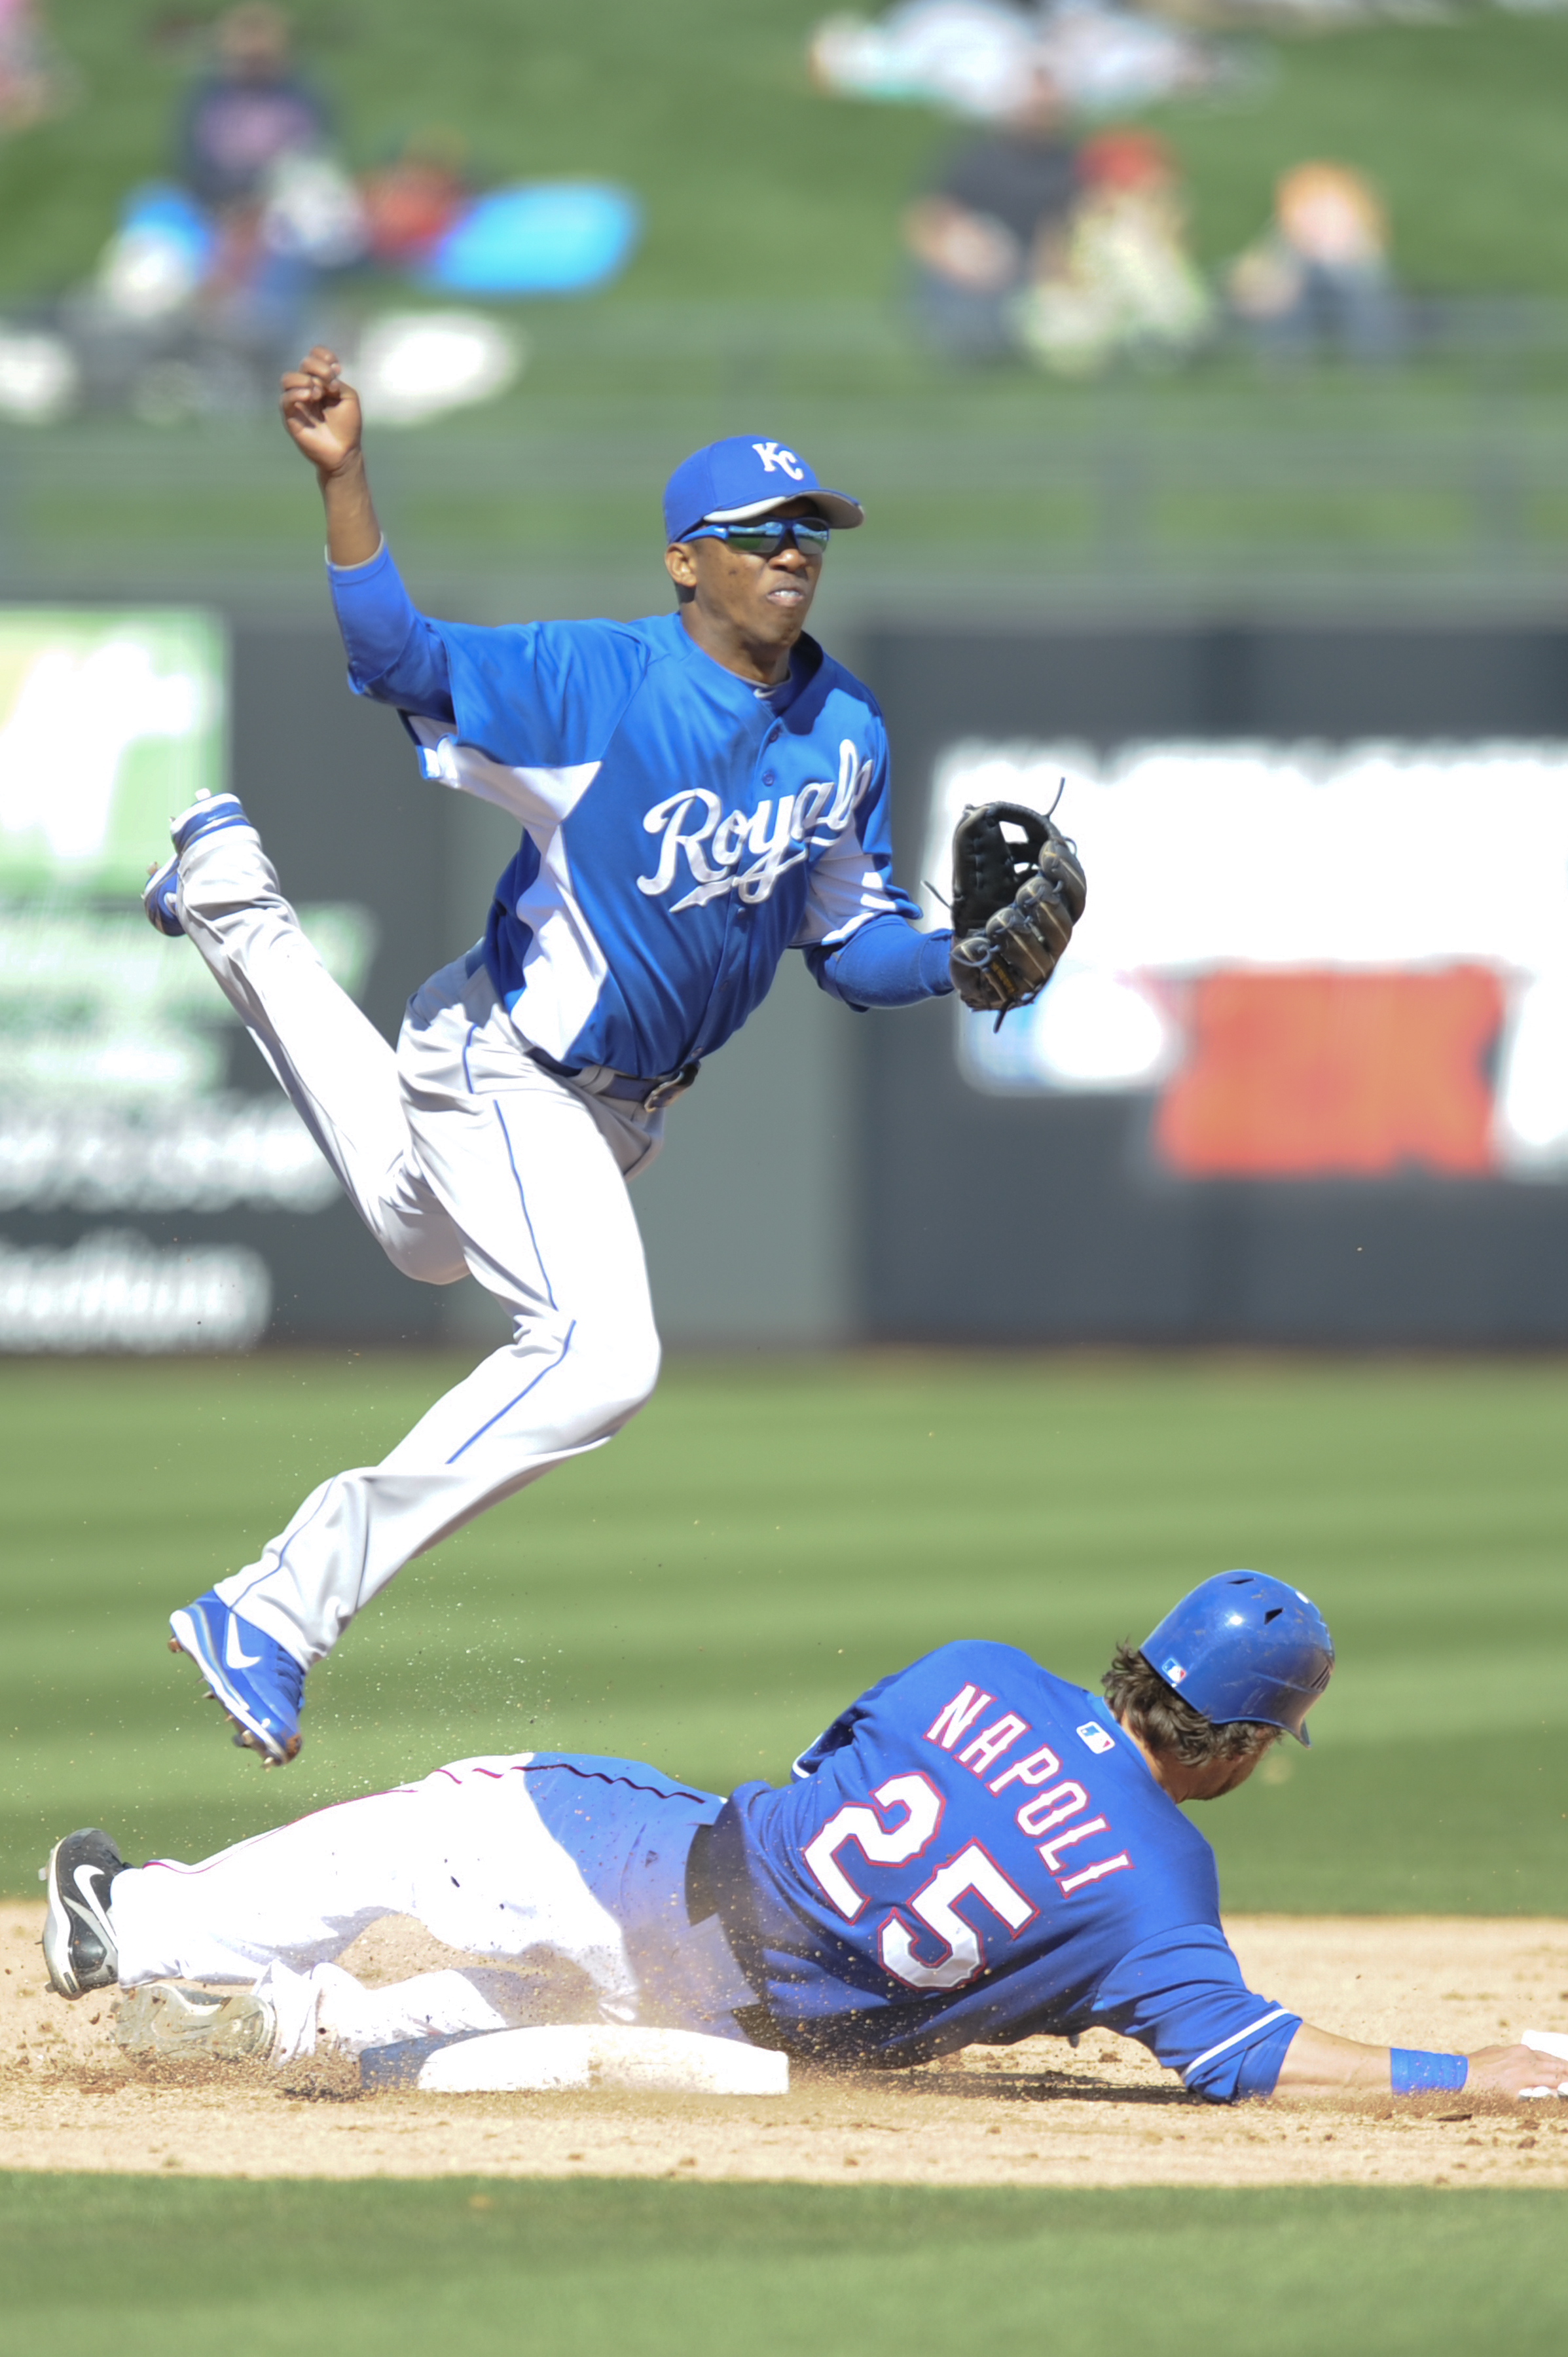 SURPISE, AZ - FEBRUARY 27: Alcides Escobar #2 of the Kansas City Royals attempts to complete a double play during a spring training game as Mike Napoli #25 of the Texas Rangers slides into him at Surprise Stadium on February 27, 2011 in Surprise, Arizona.